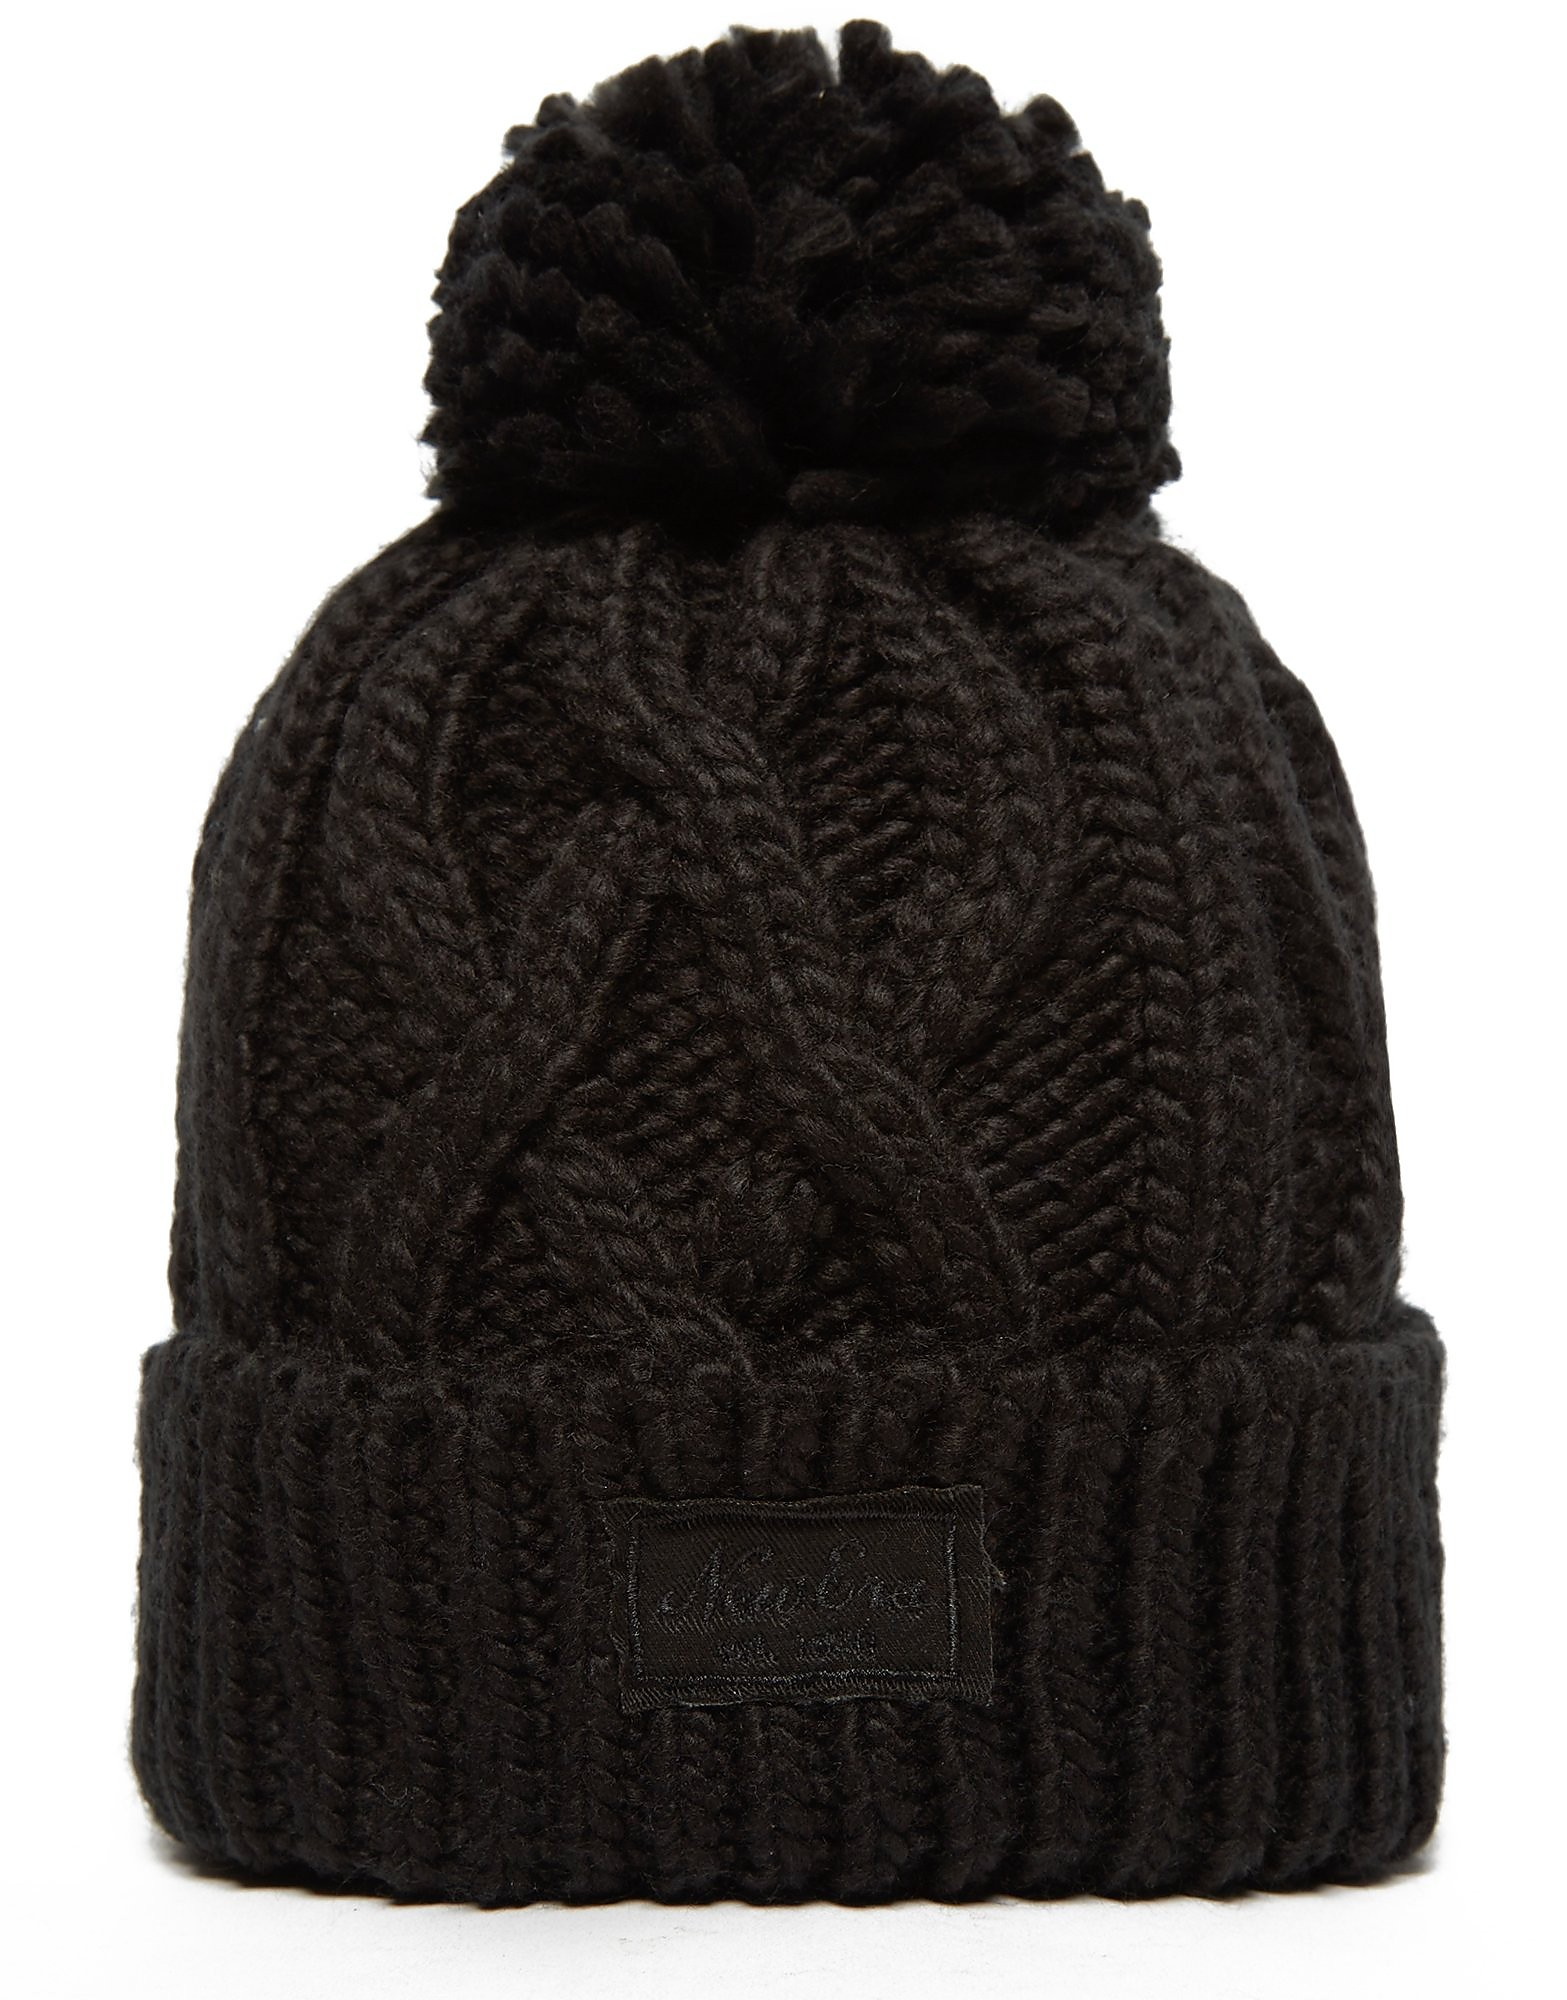 New Era Patch Pom Pom Beanie Hat